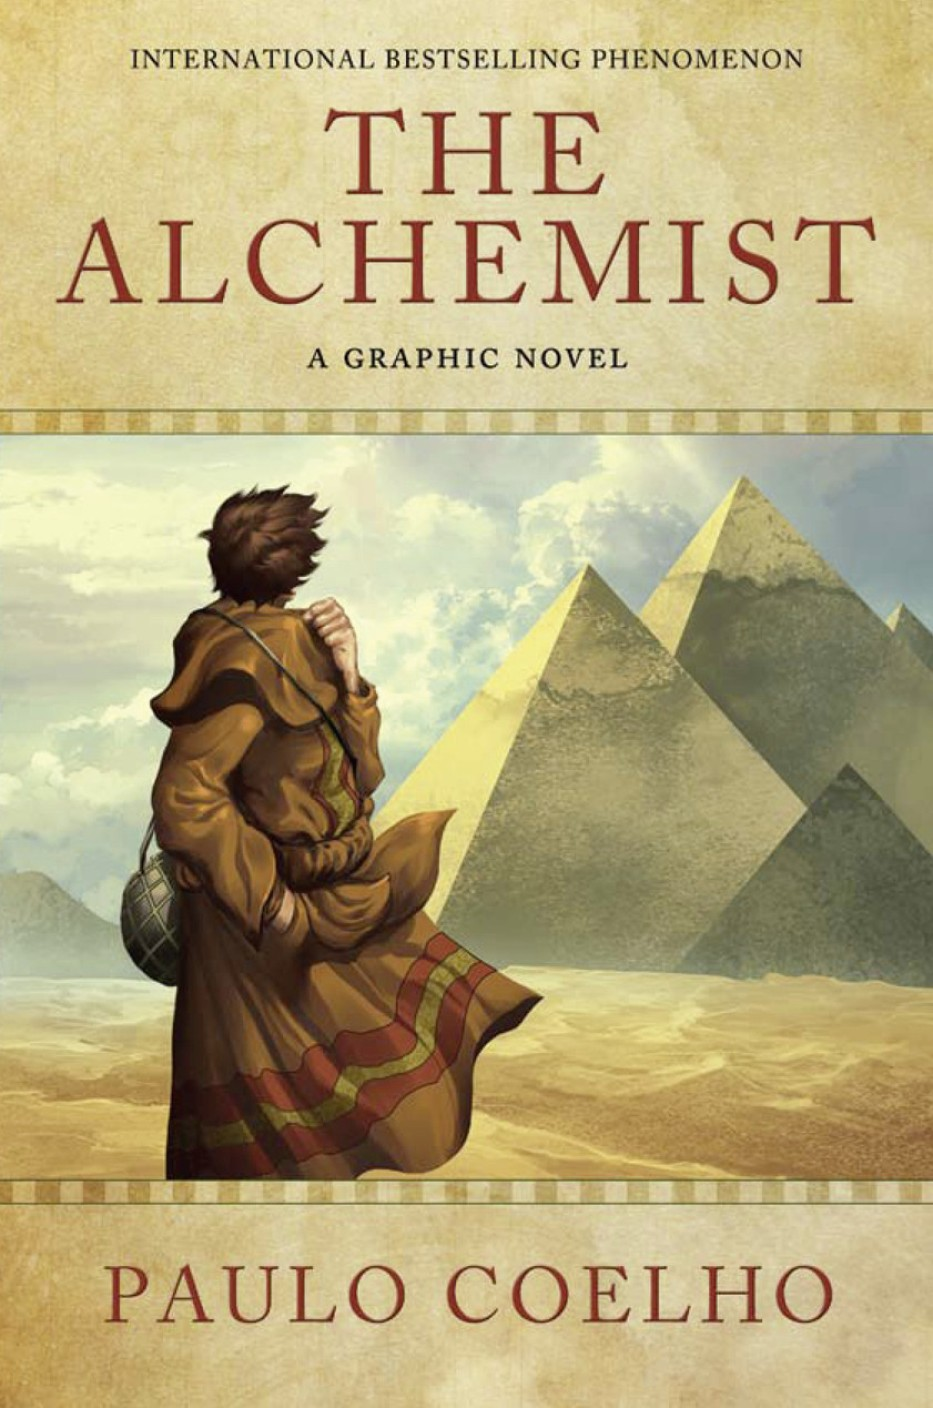 alchemist novel summary alchemist graphic novel a graphic novel  alchemist graphic novel a graphic novel buy alchemist add to cart fullmetal alchemist the